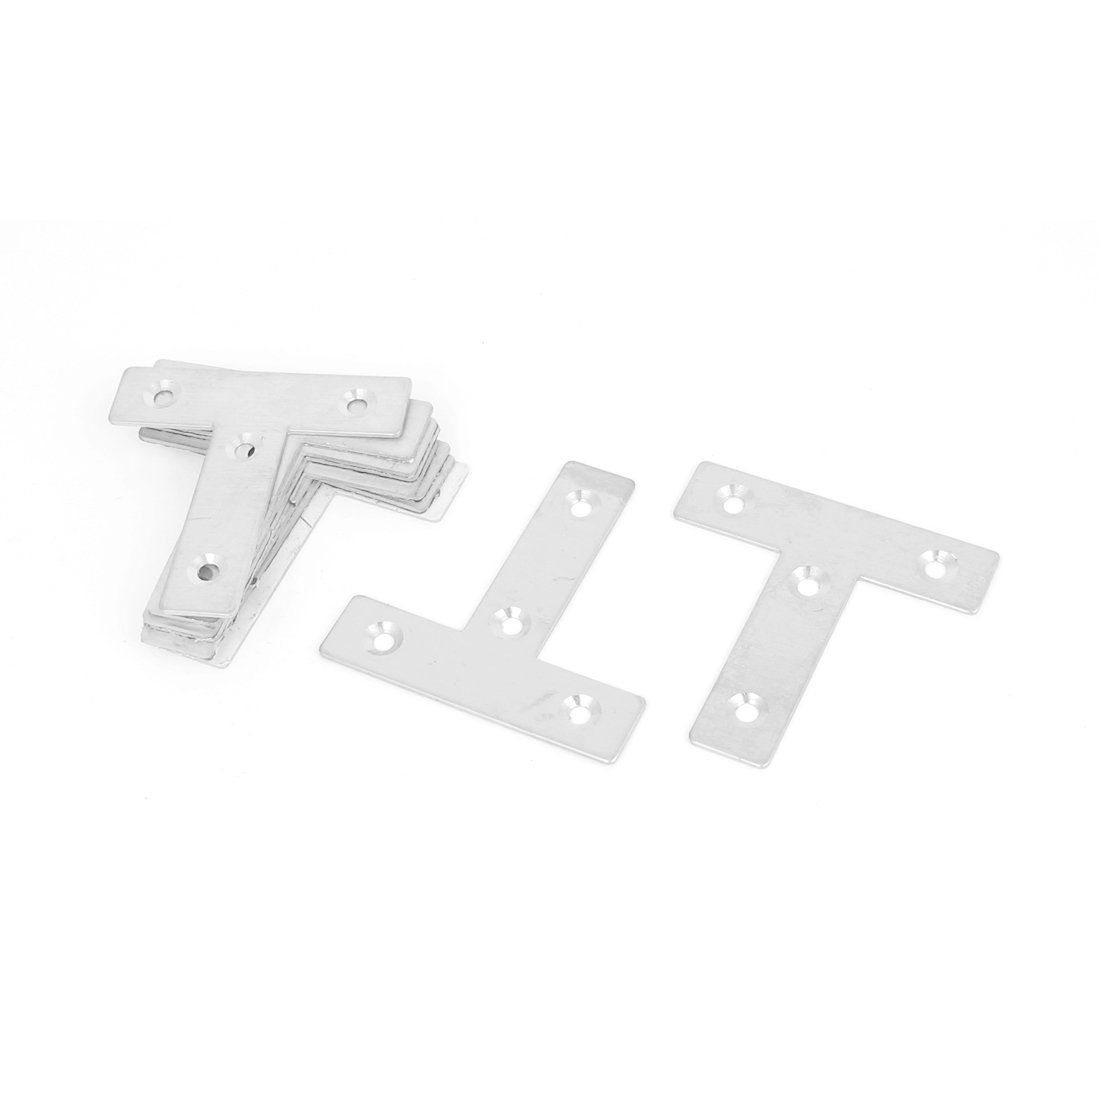 60mmx60mm Flat T Shape Angle Plate Corner Brace Repair Brackets 10PCS